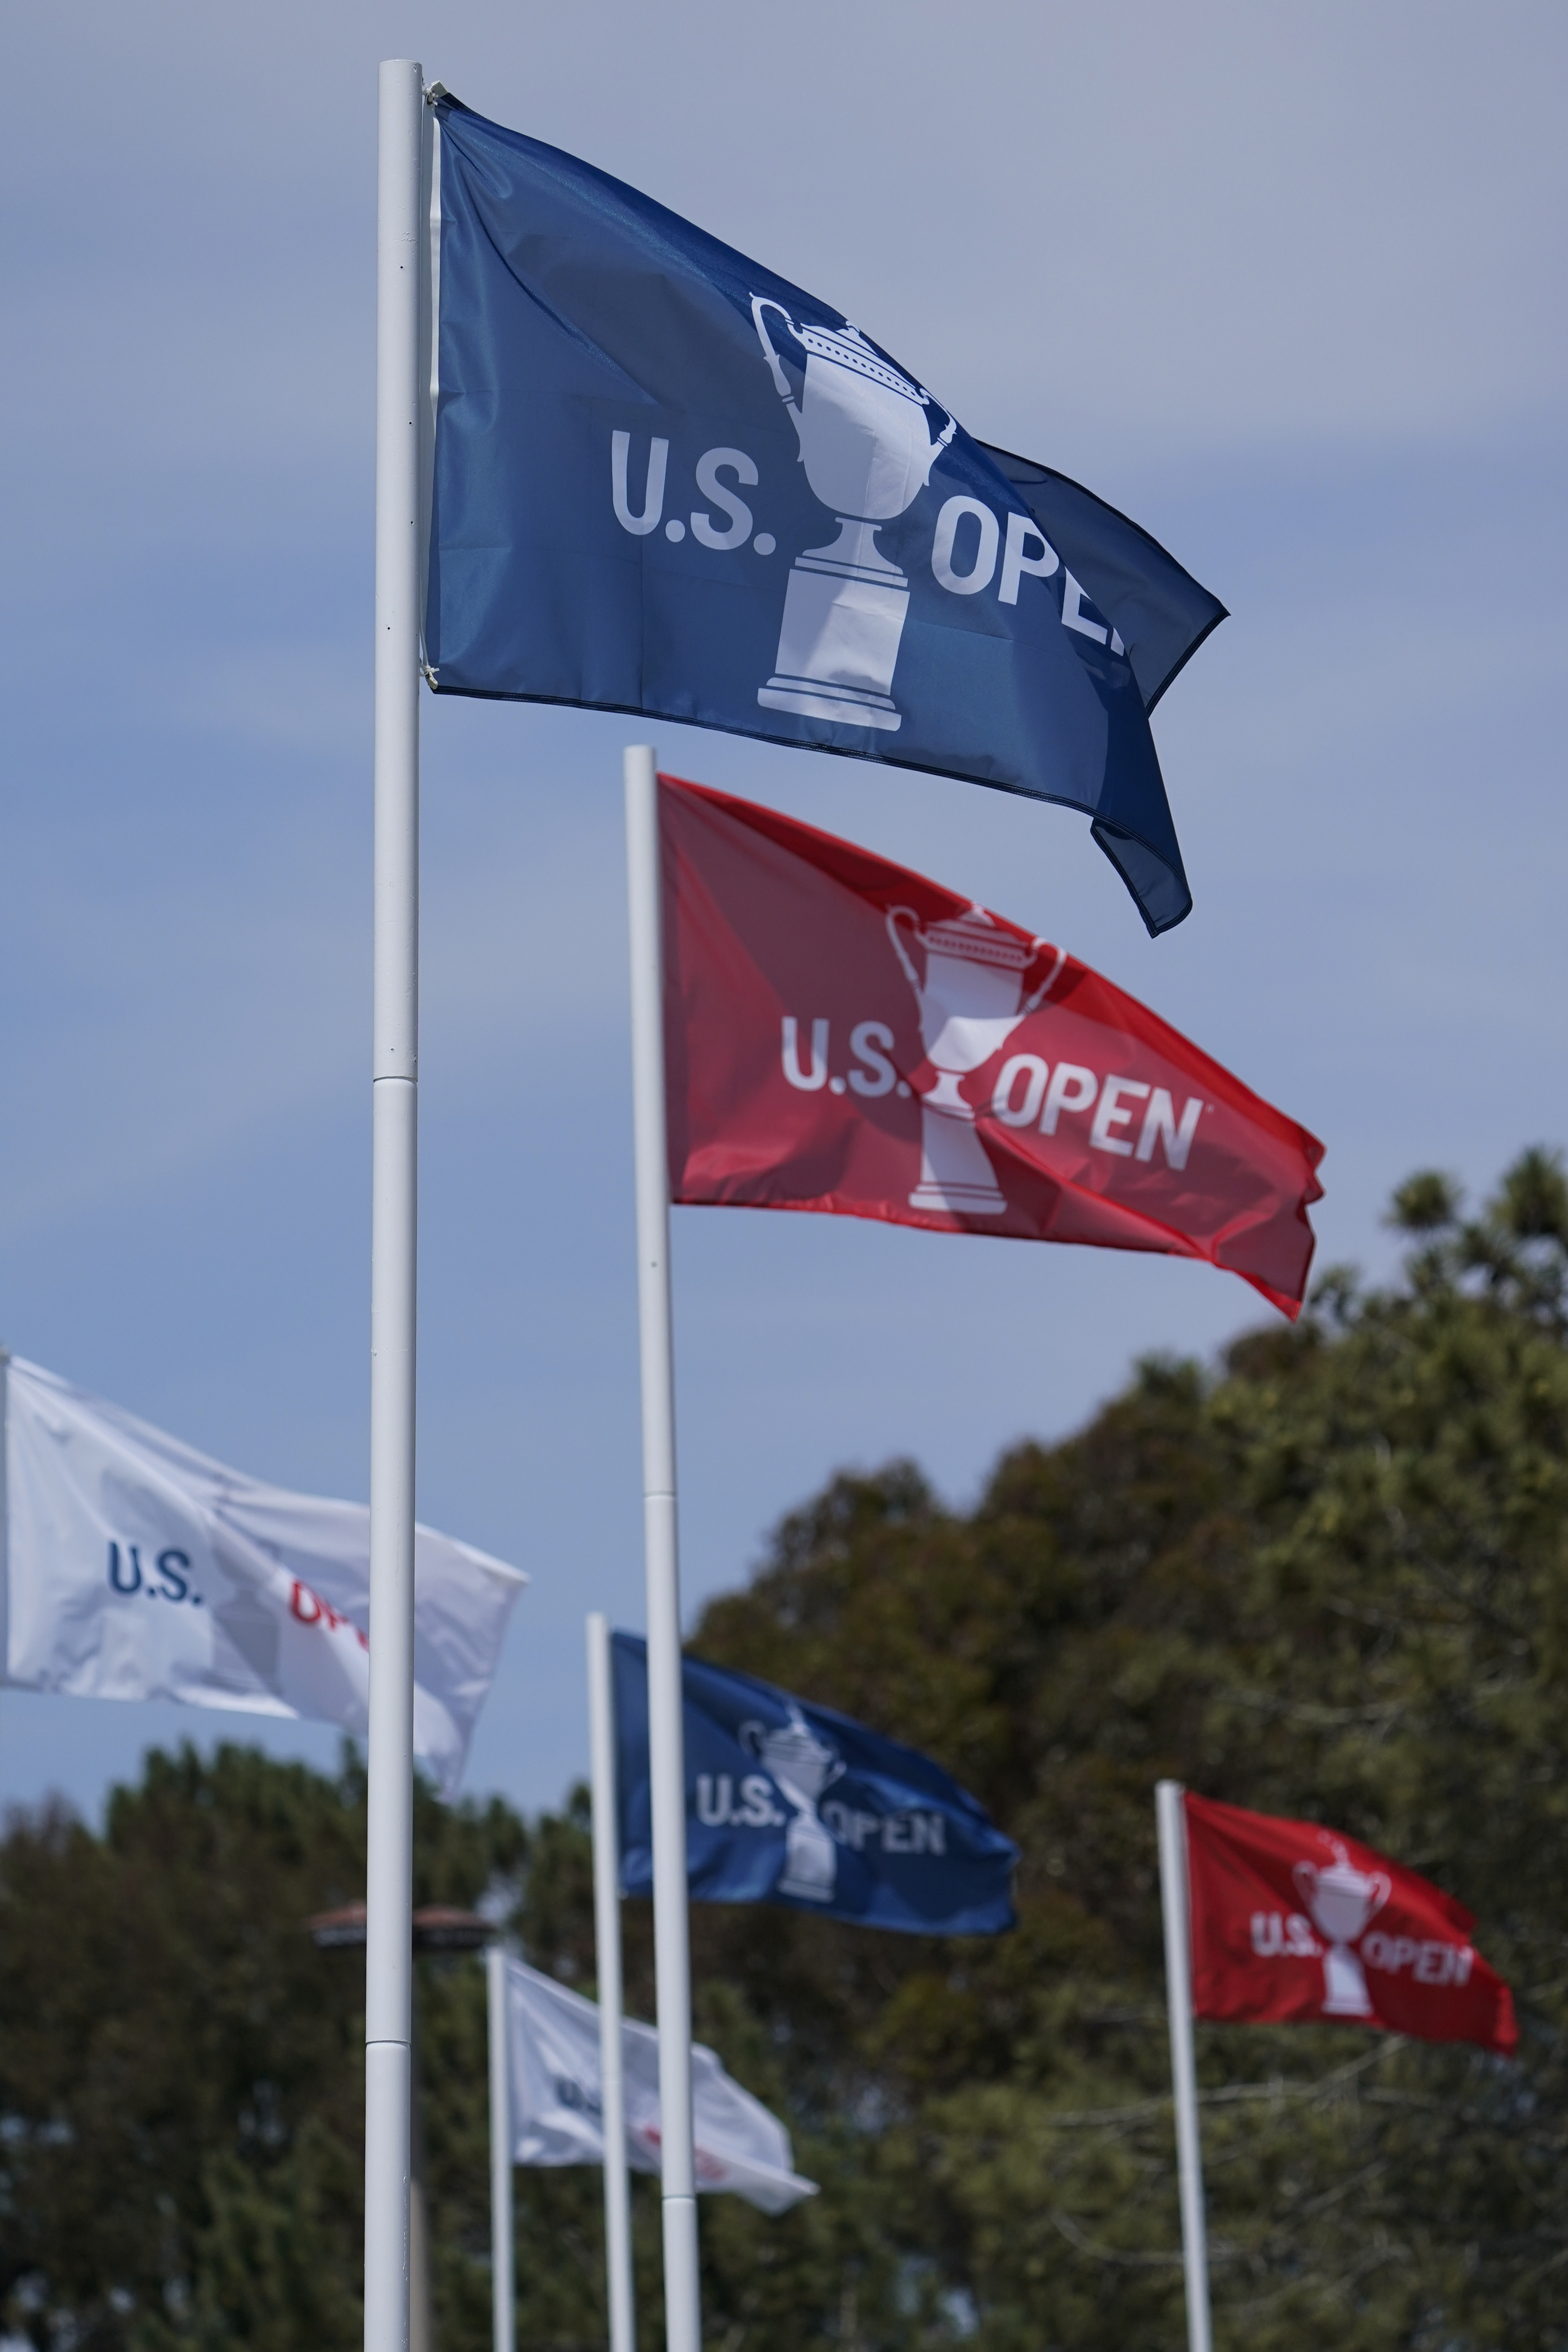 A stiff breeze blowing the U.S. Open flags during a practice round of the U.S. Open golf tournament at Torrey Pines.